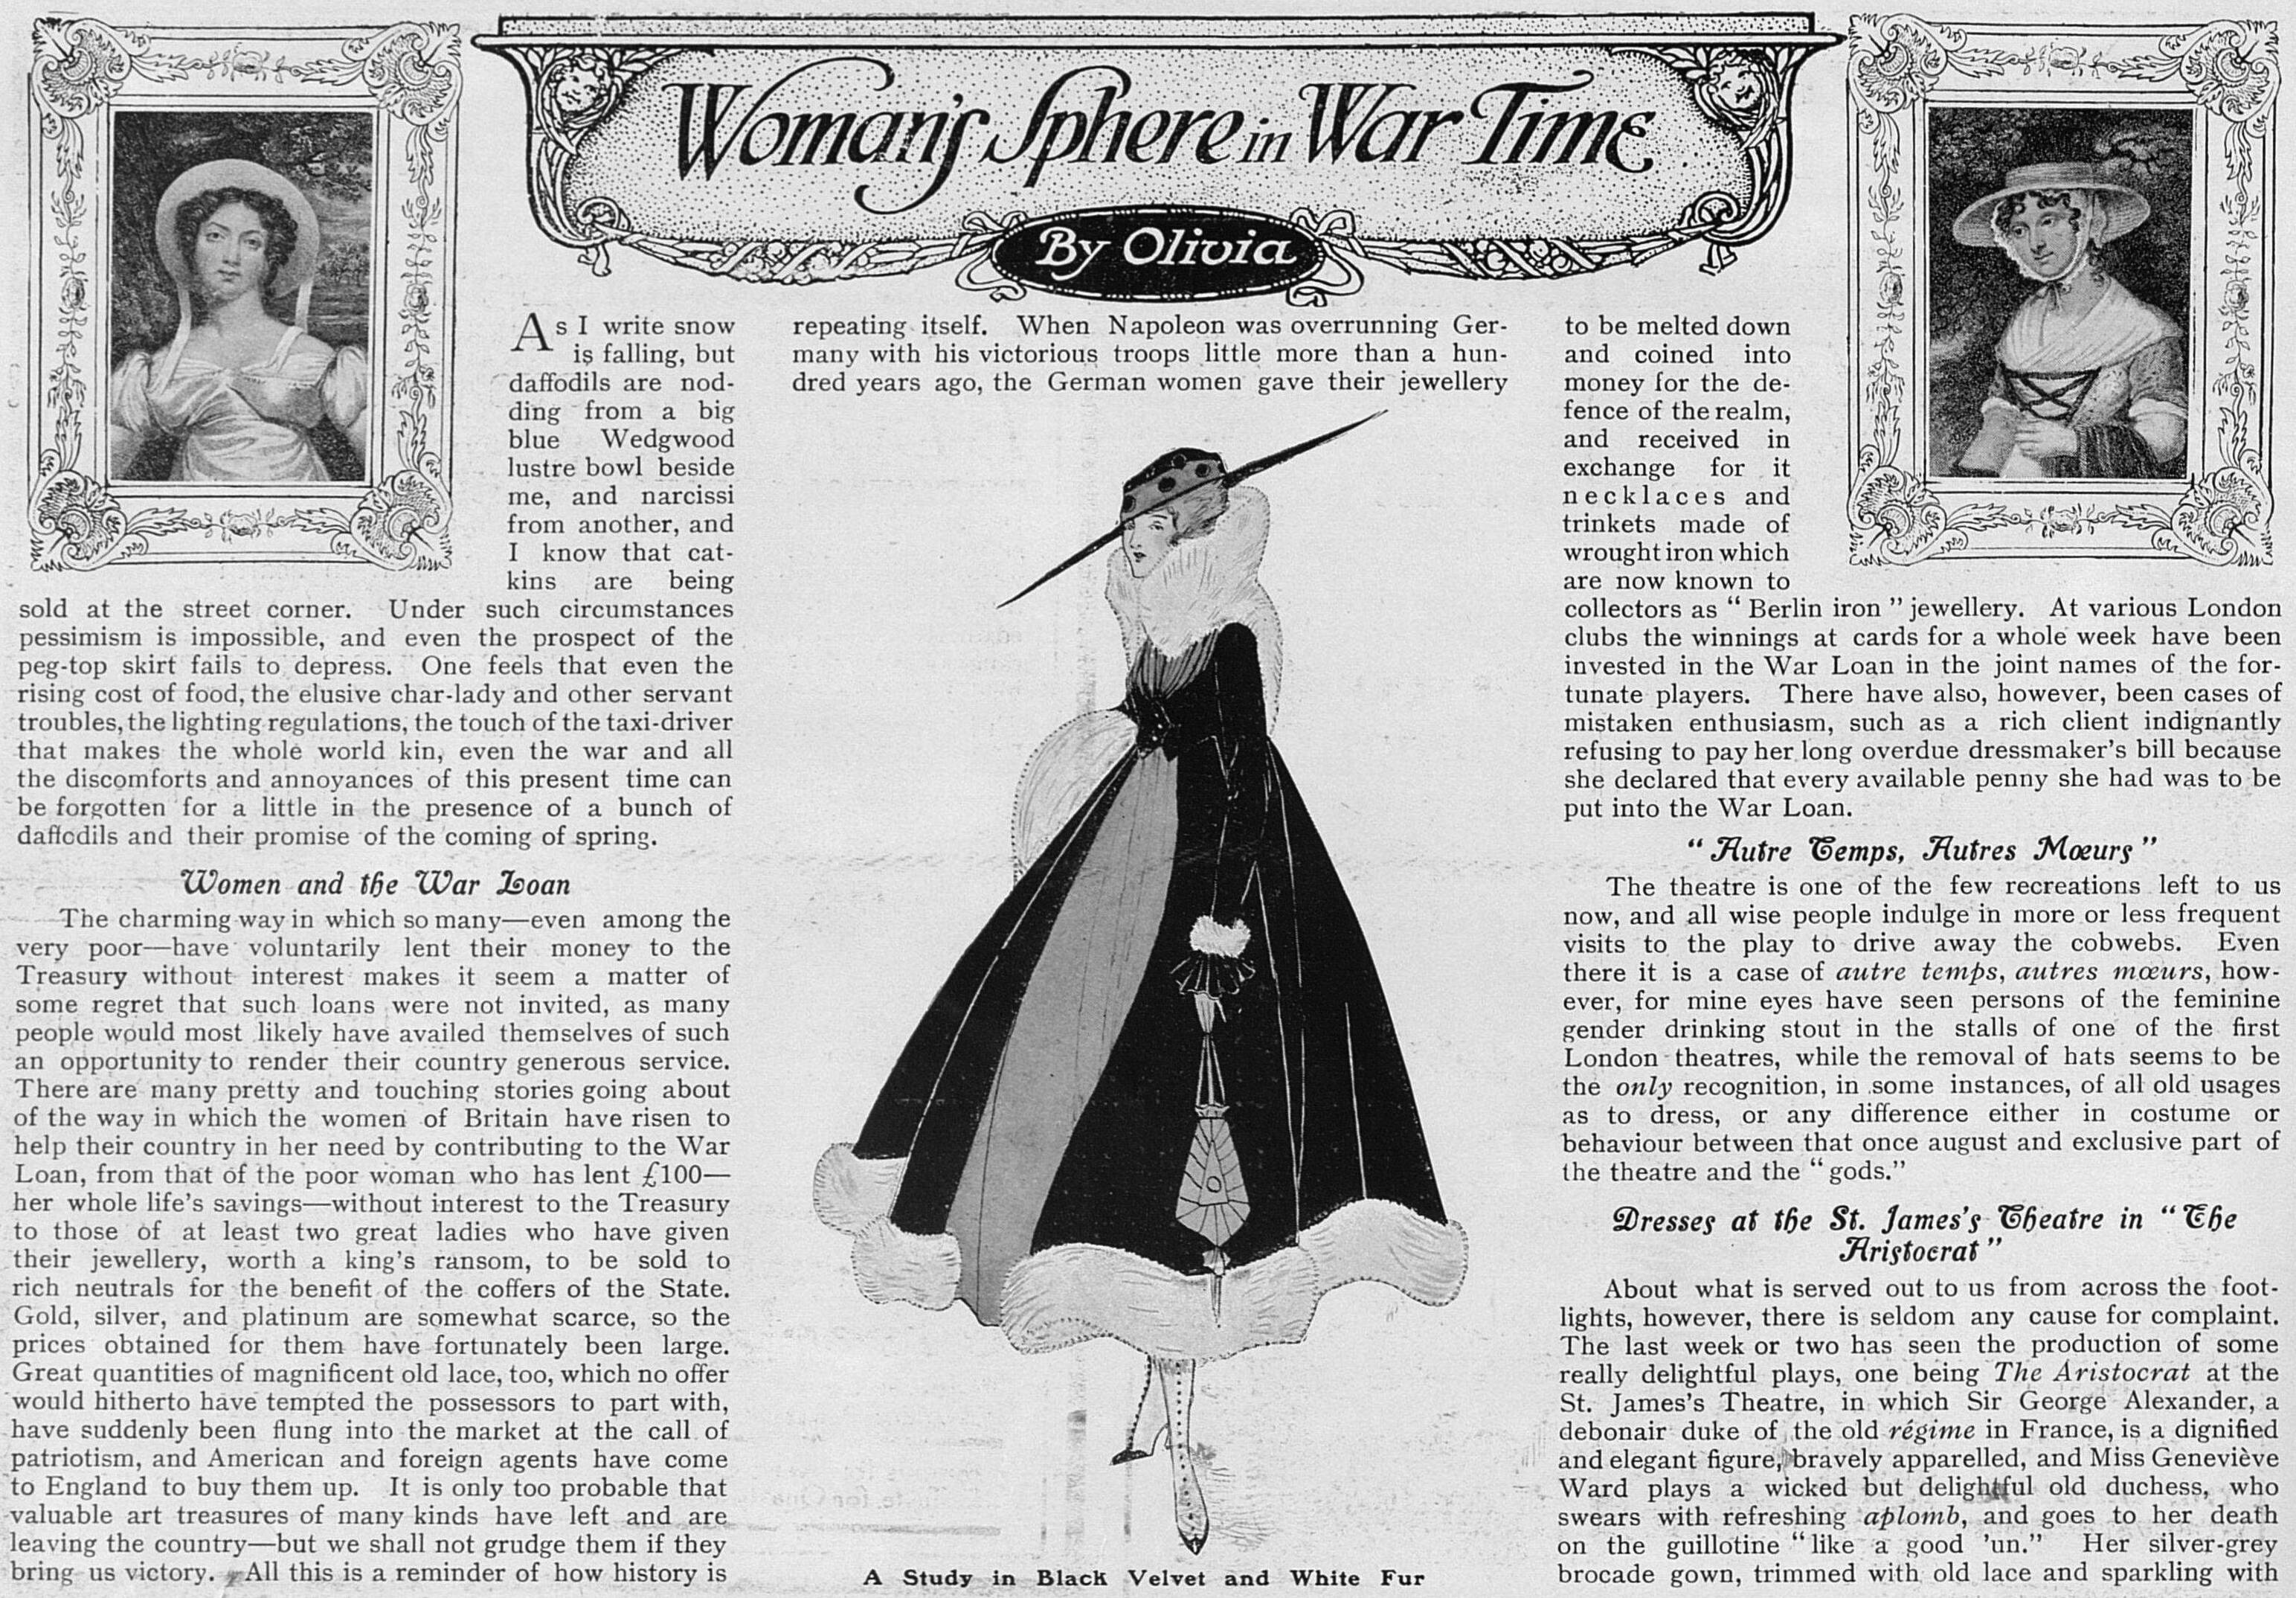 WomansSphereInWarTime_10Feb1917